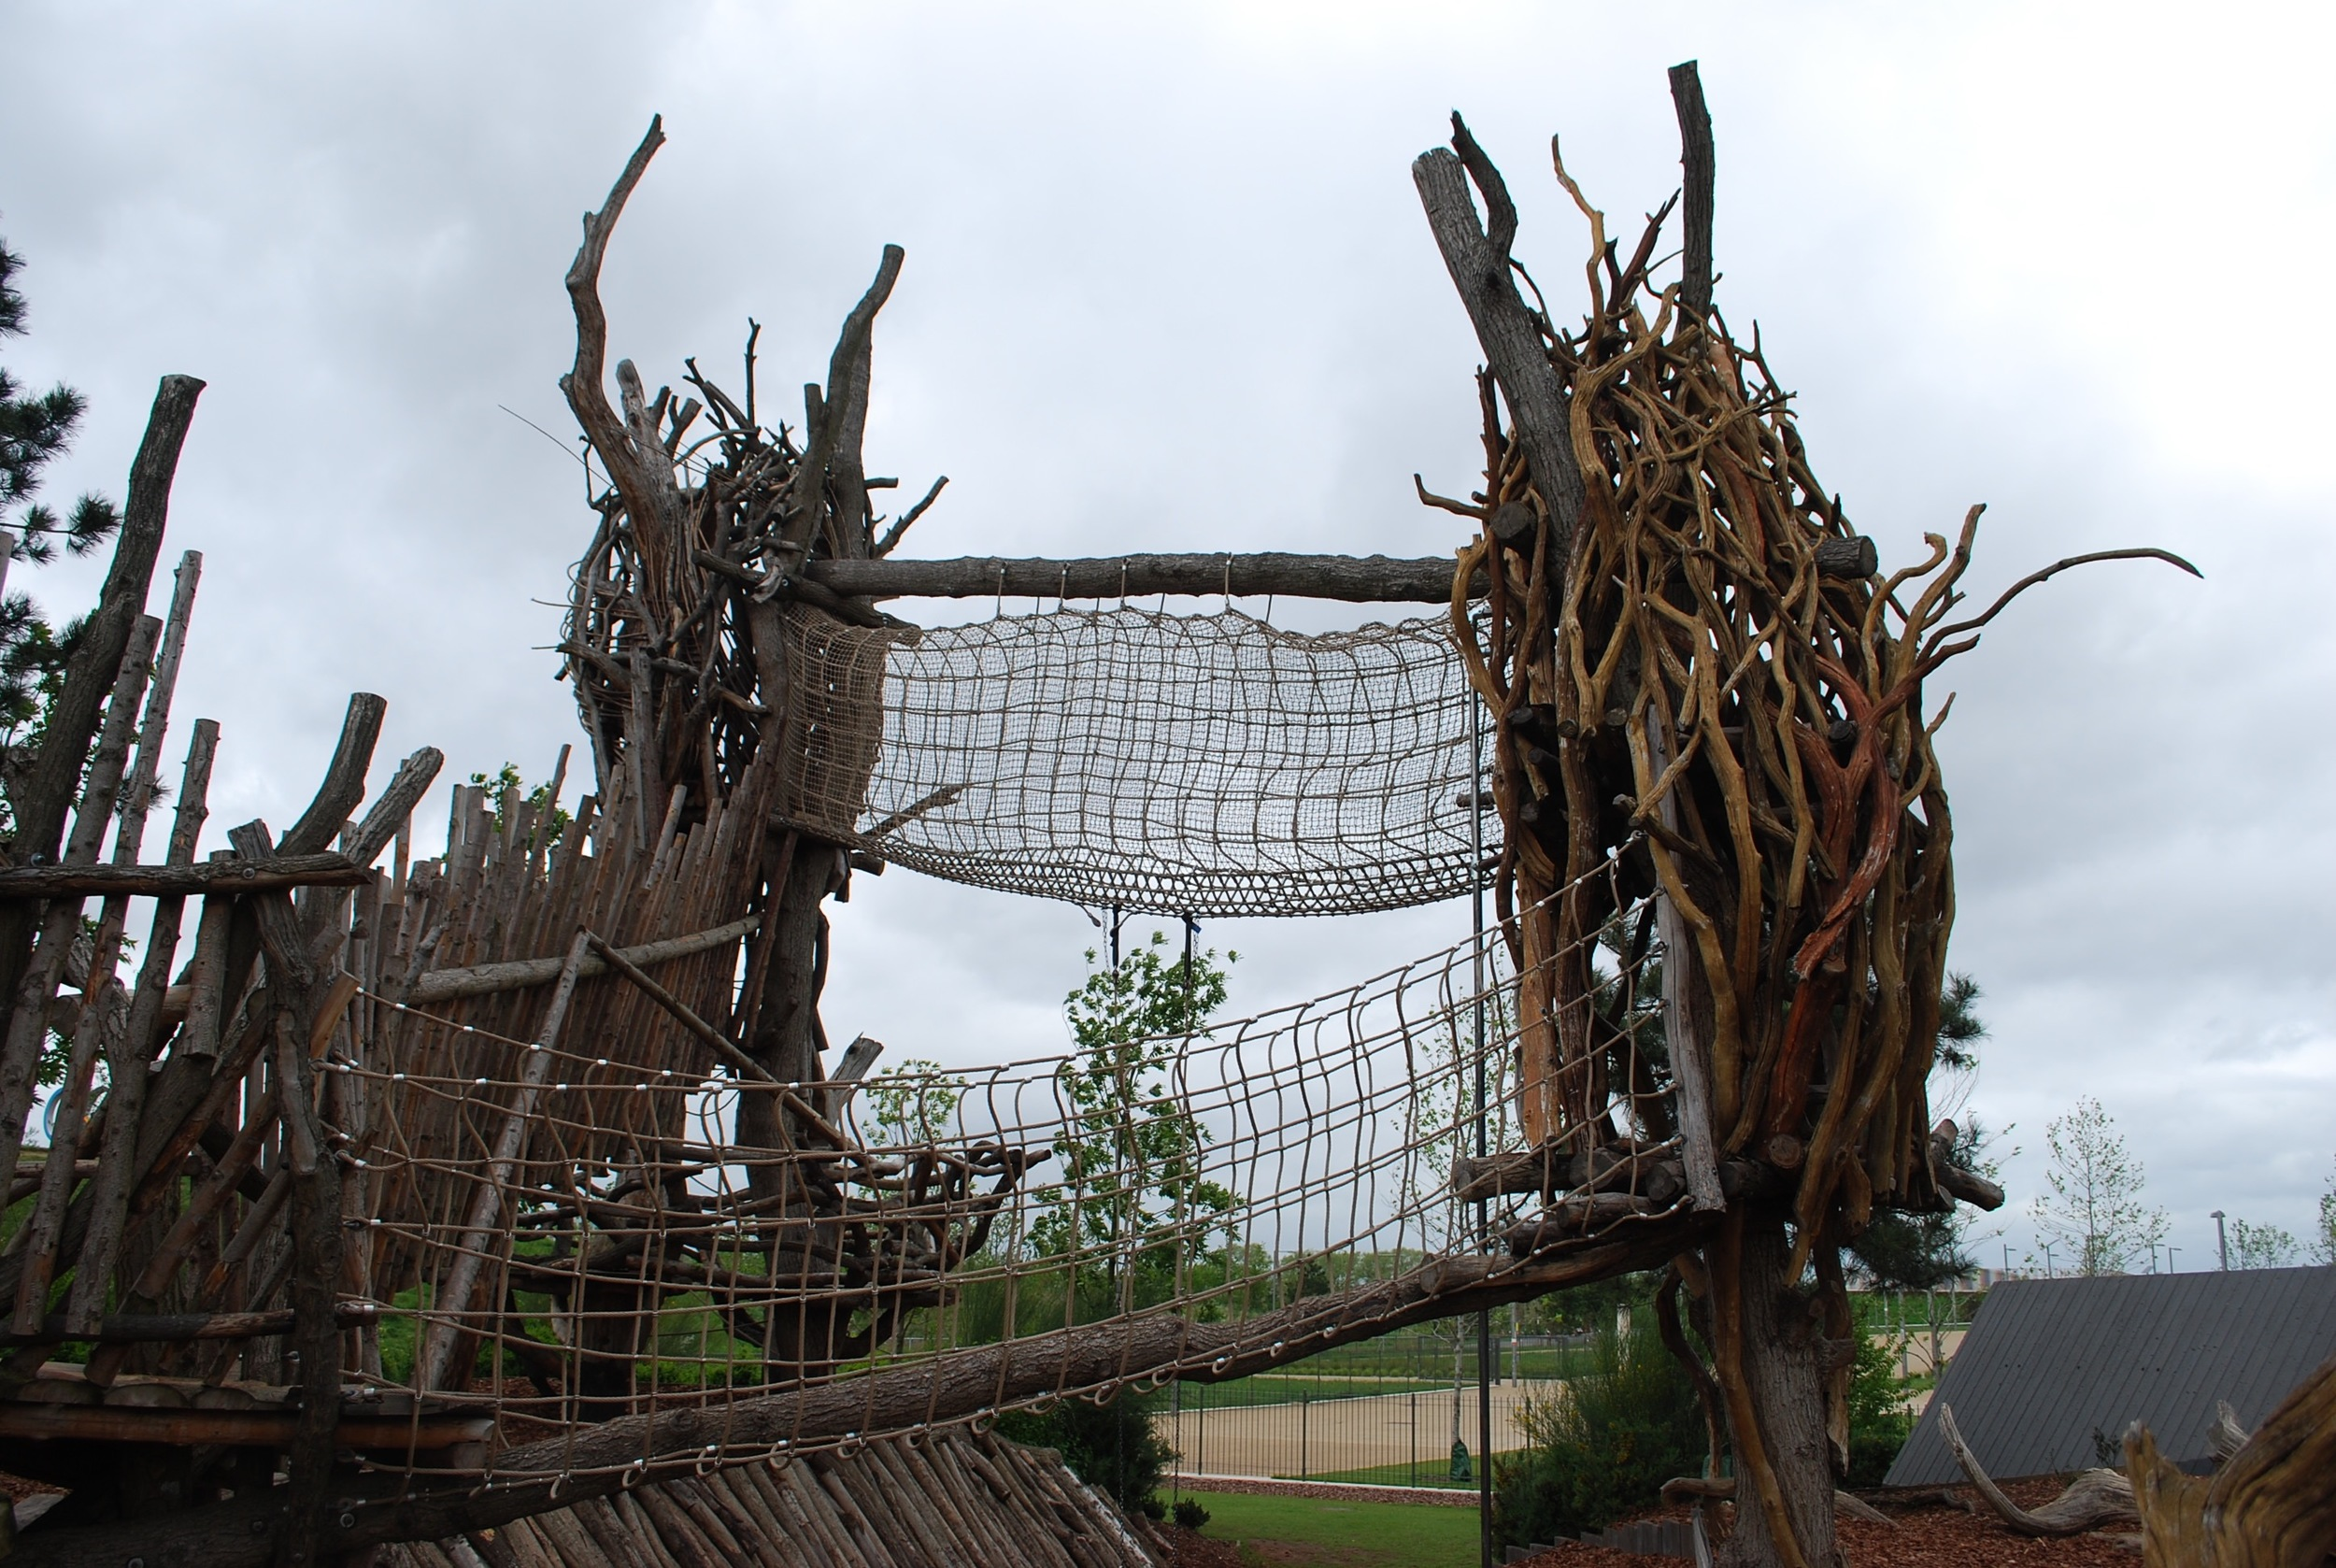 Log towers and net walks give the illusion of danger at Tumbling Bay Playground